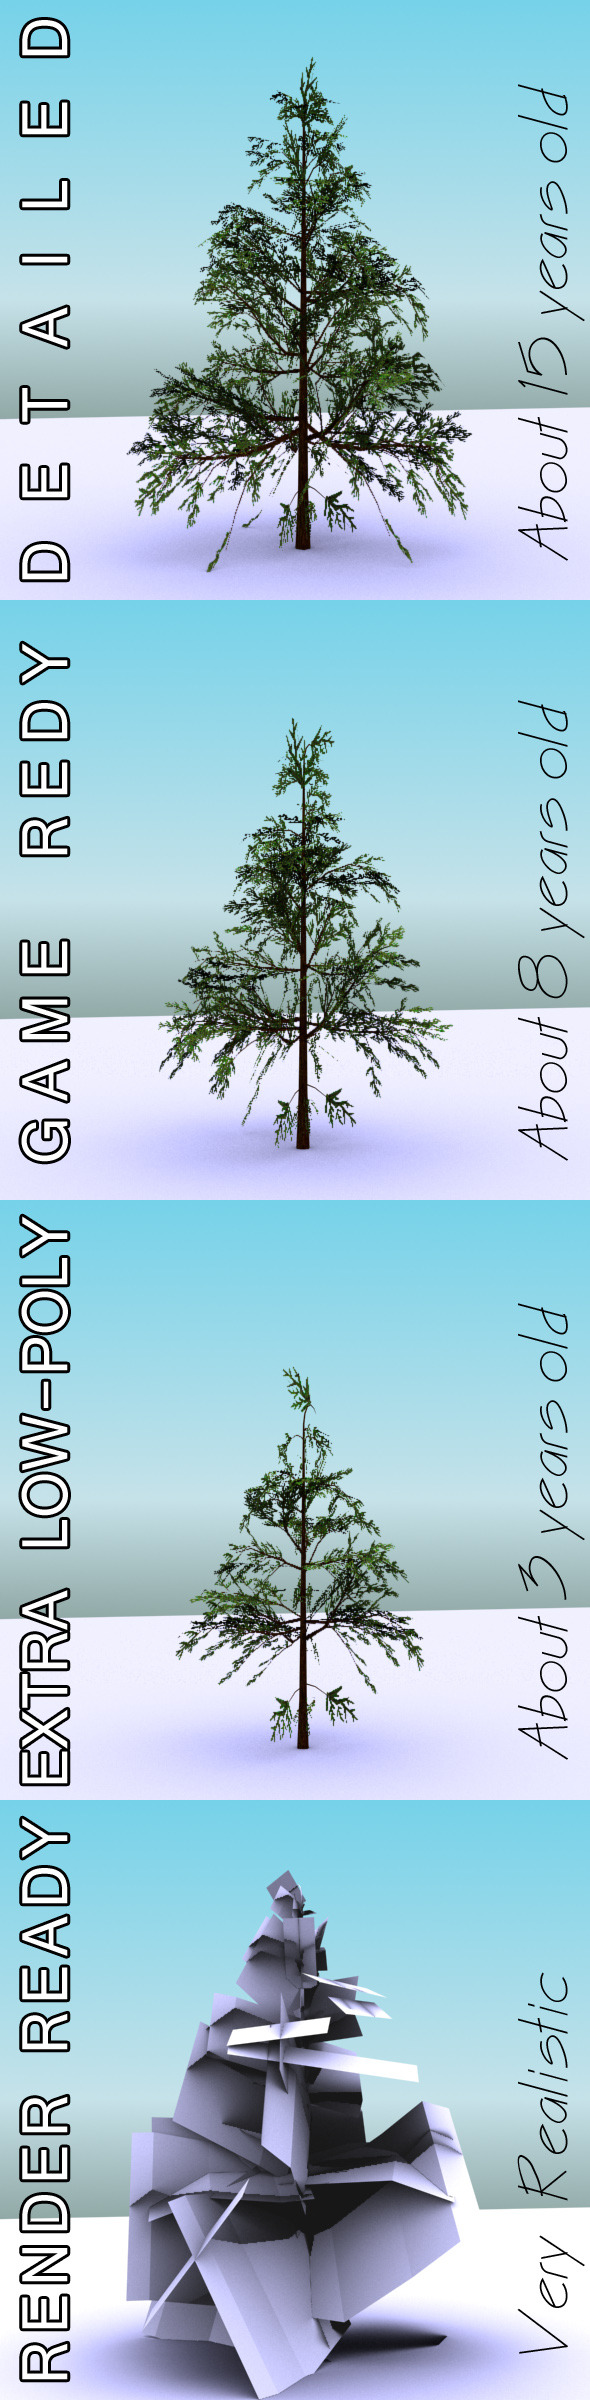 3DOcean GameReady Low Poly Tree Pack 1 Lawson s Cypress 10665710